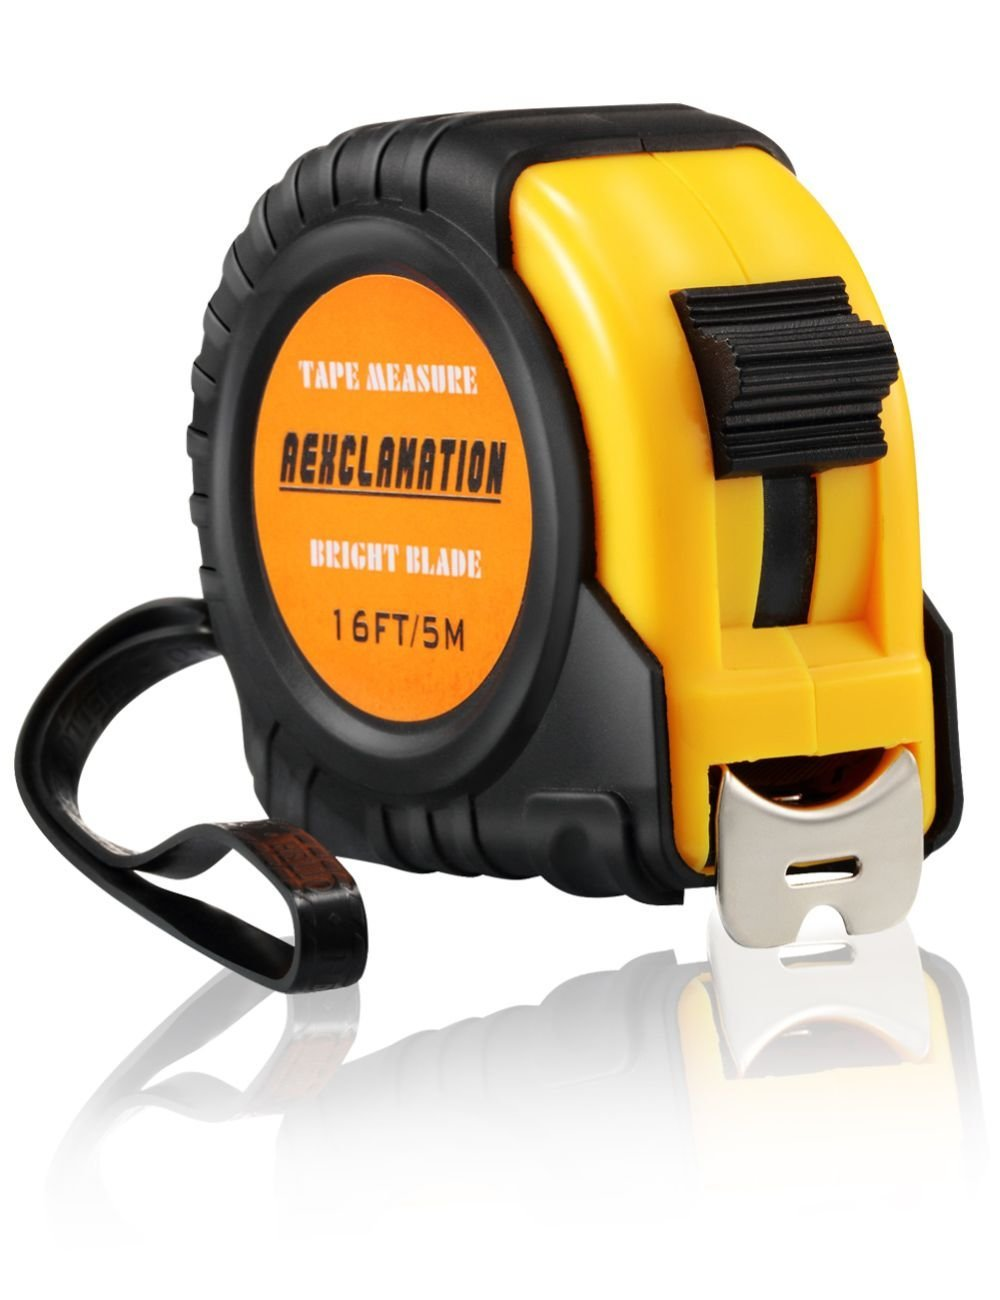 Measuring Tape Metric and Inches, Tape Measure Retractable with Easy Read Numbers, Bright Blade, 16Ft/5M Measuring Tape Ruler for Engineers, Construction, Outdoor AEXCLAMATION